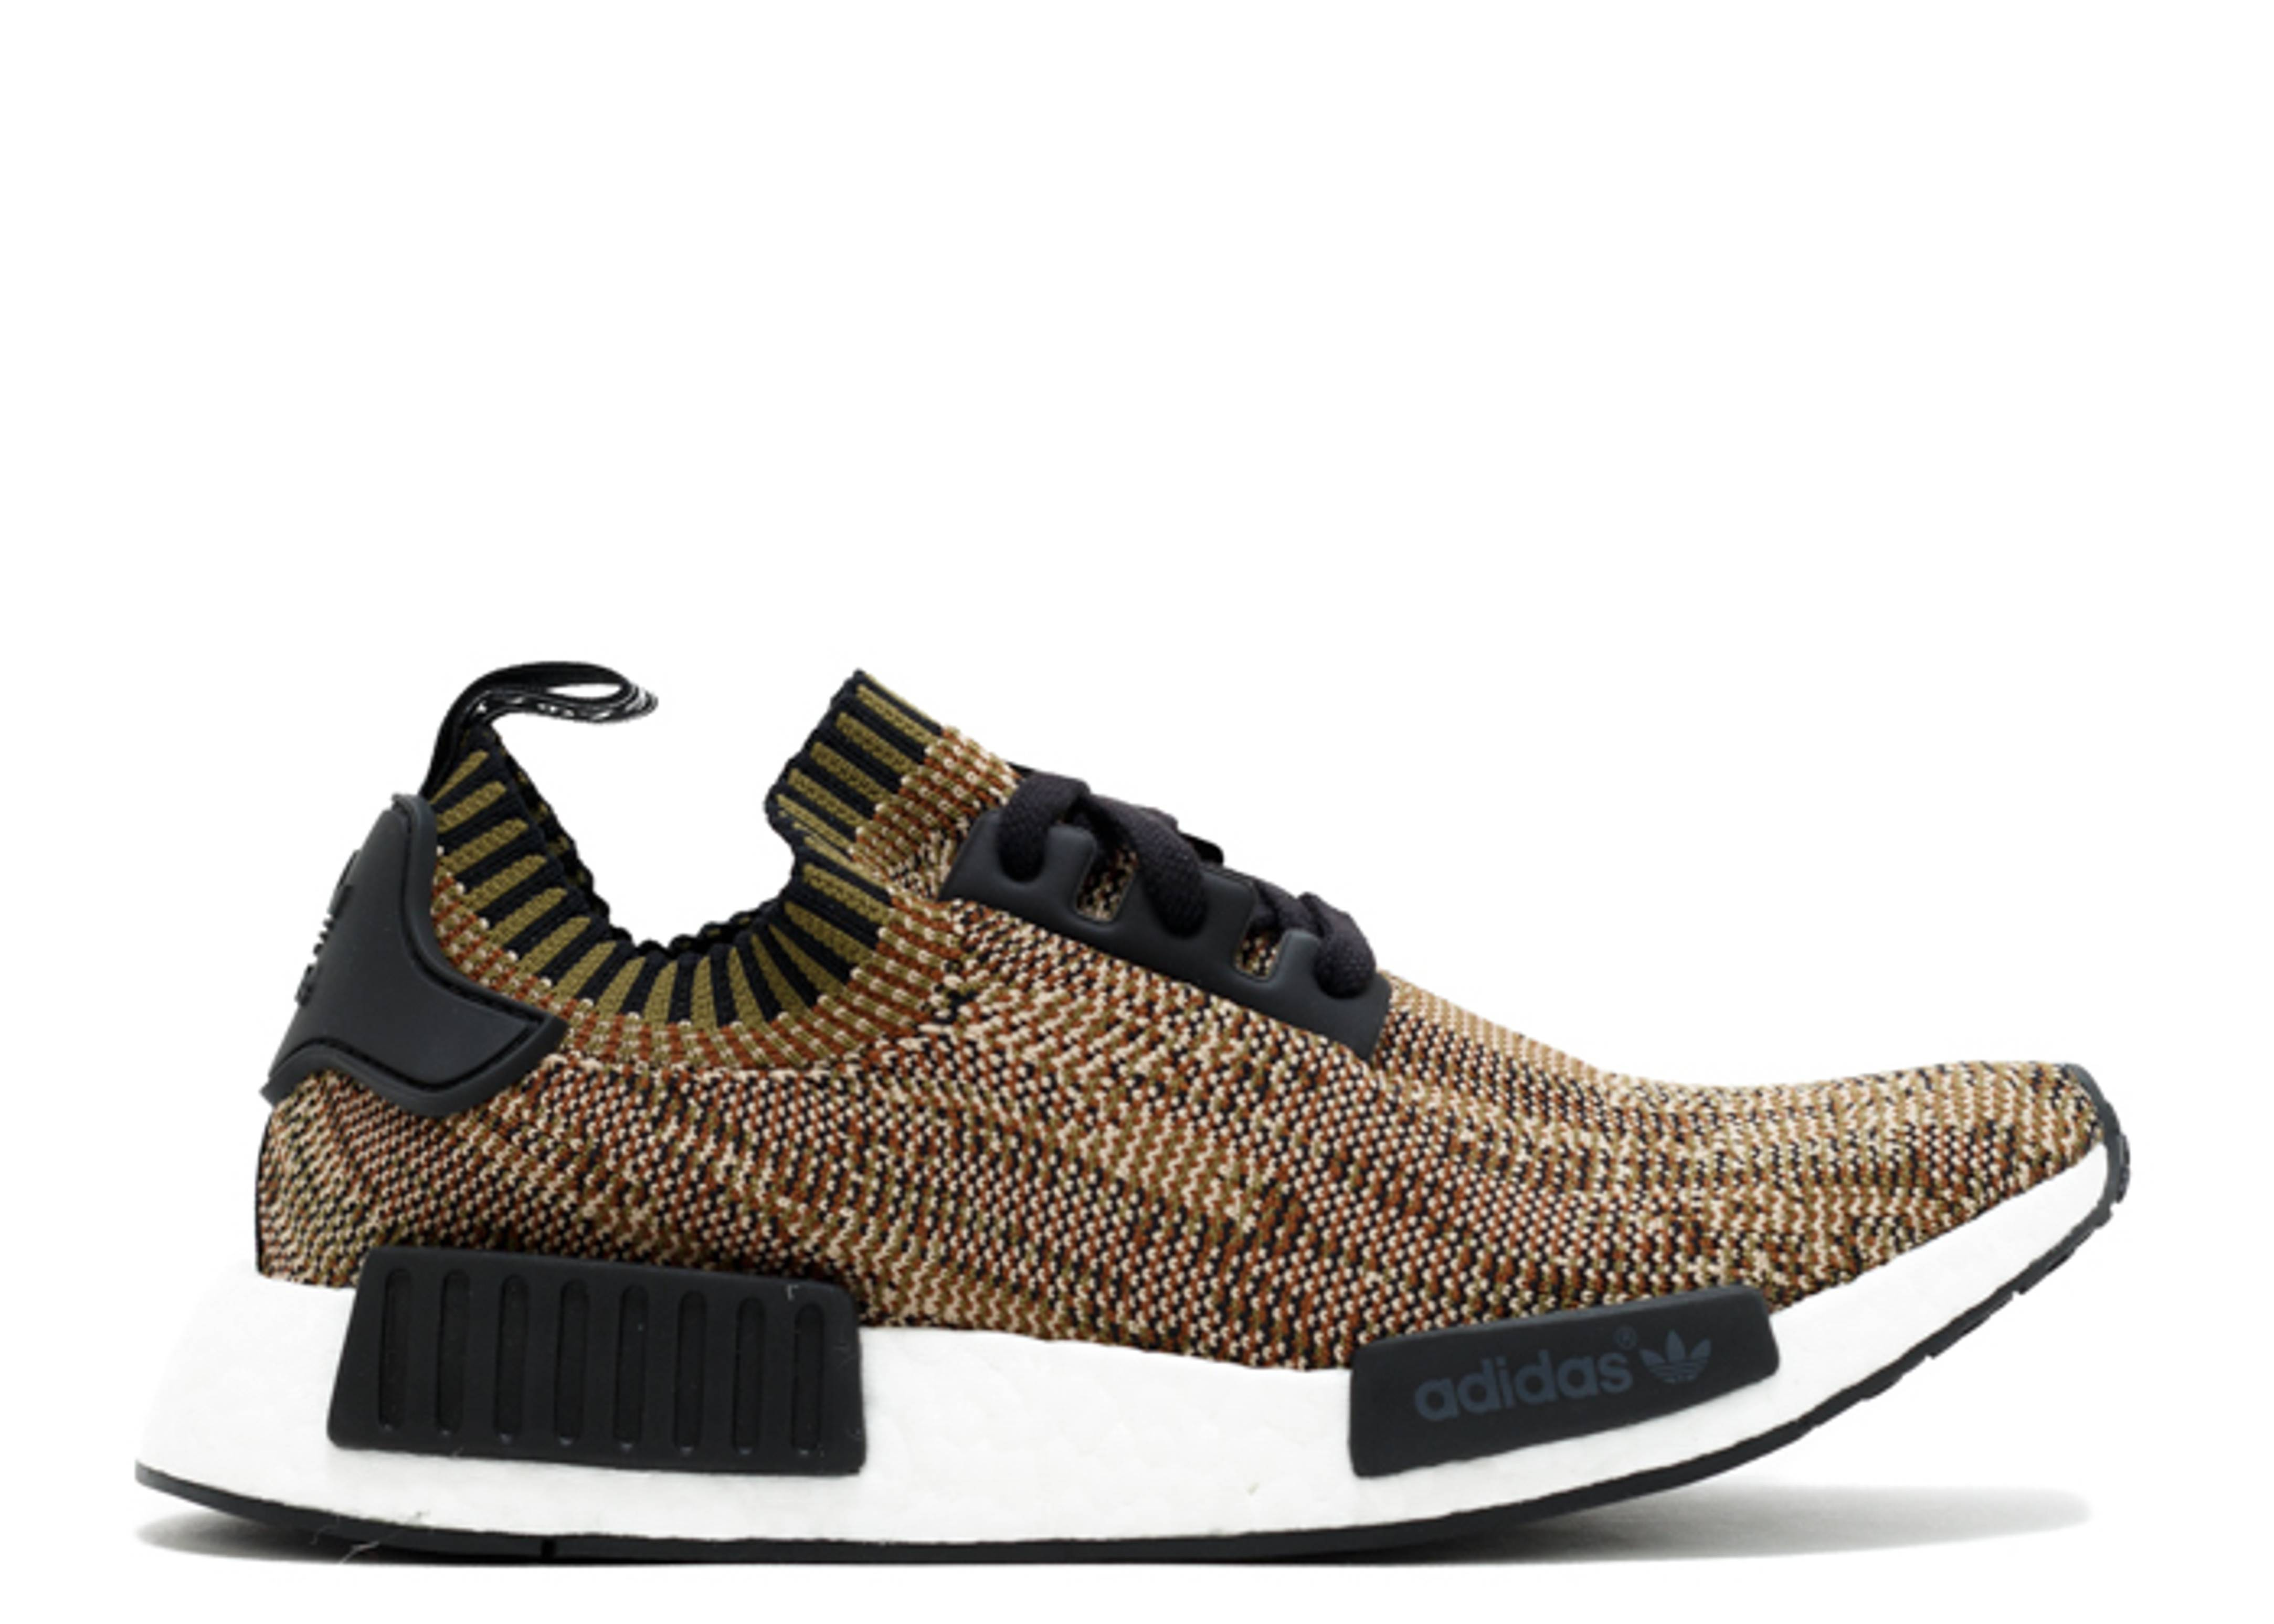 Adidas NMD R1 Cargo Green Olive Trainers UK in 2019 | Adidas